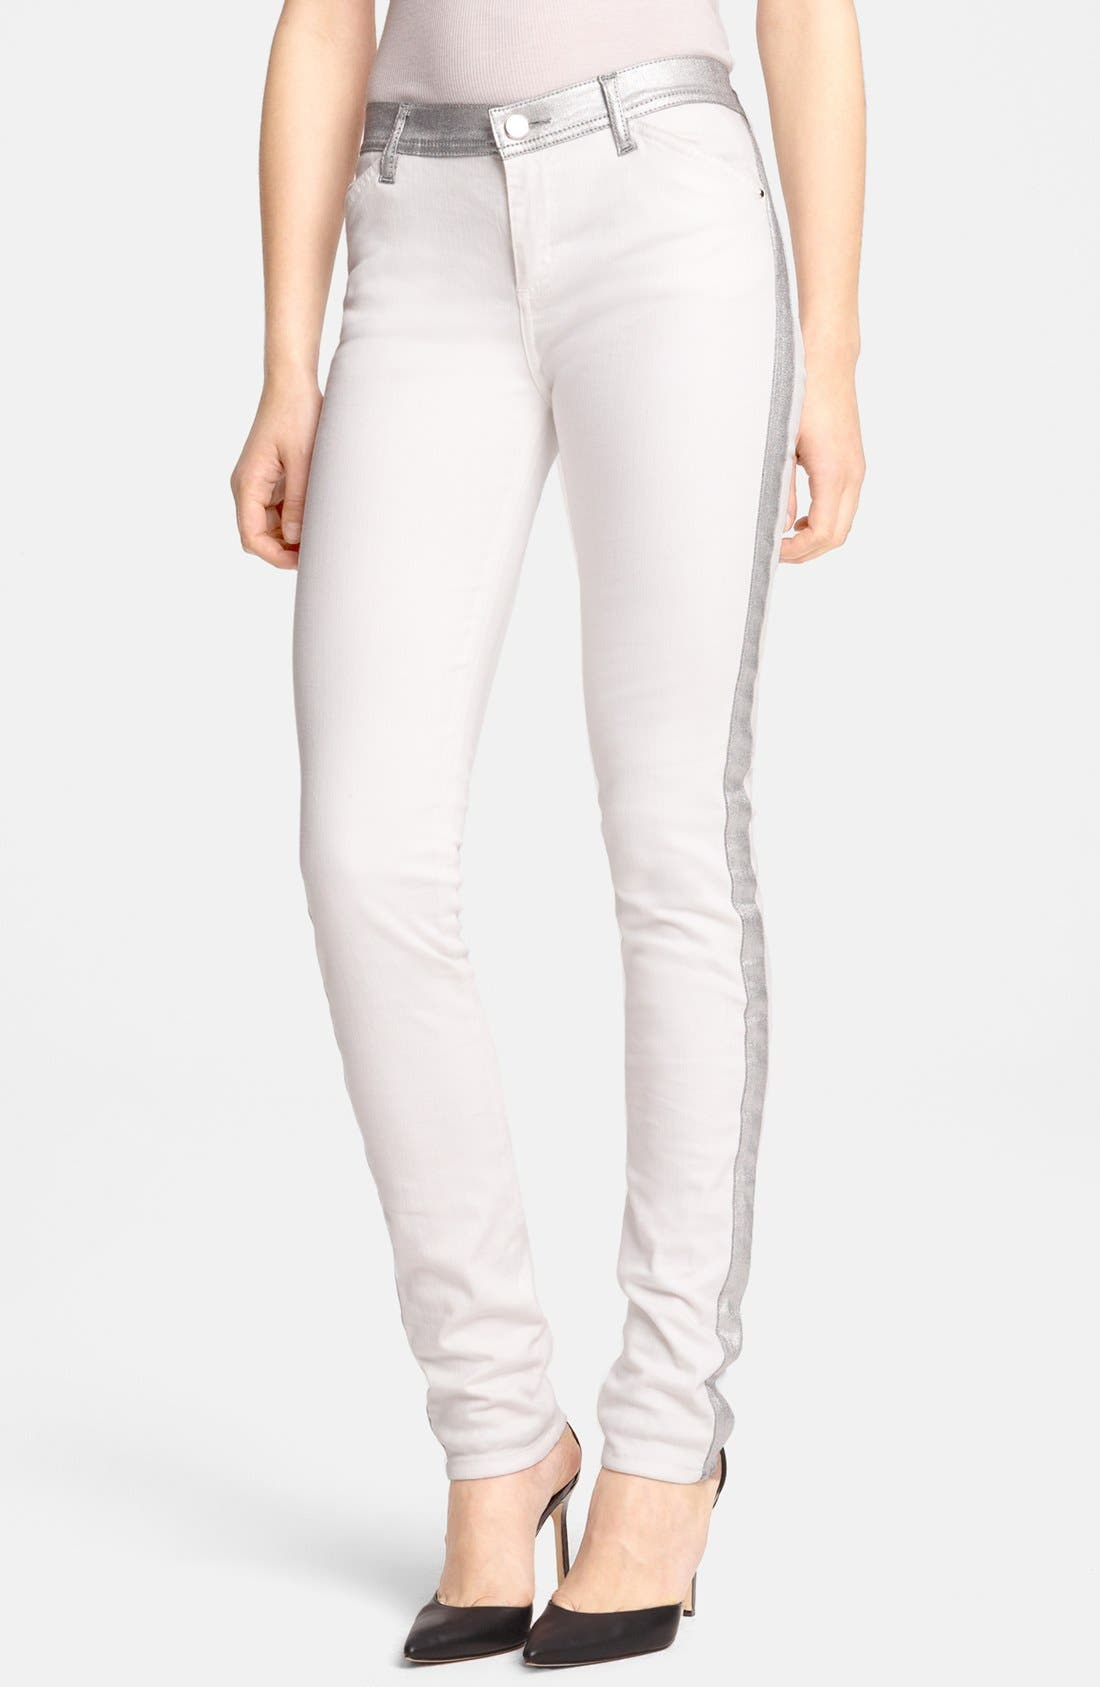 Alternate Image 1 Selected - Faith Connexion Metallic Trim Skinny Jeans